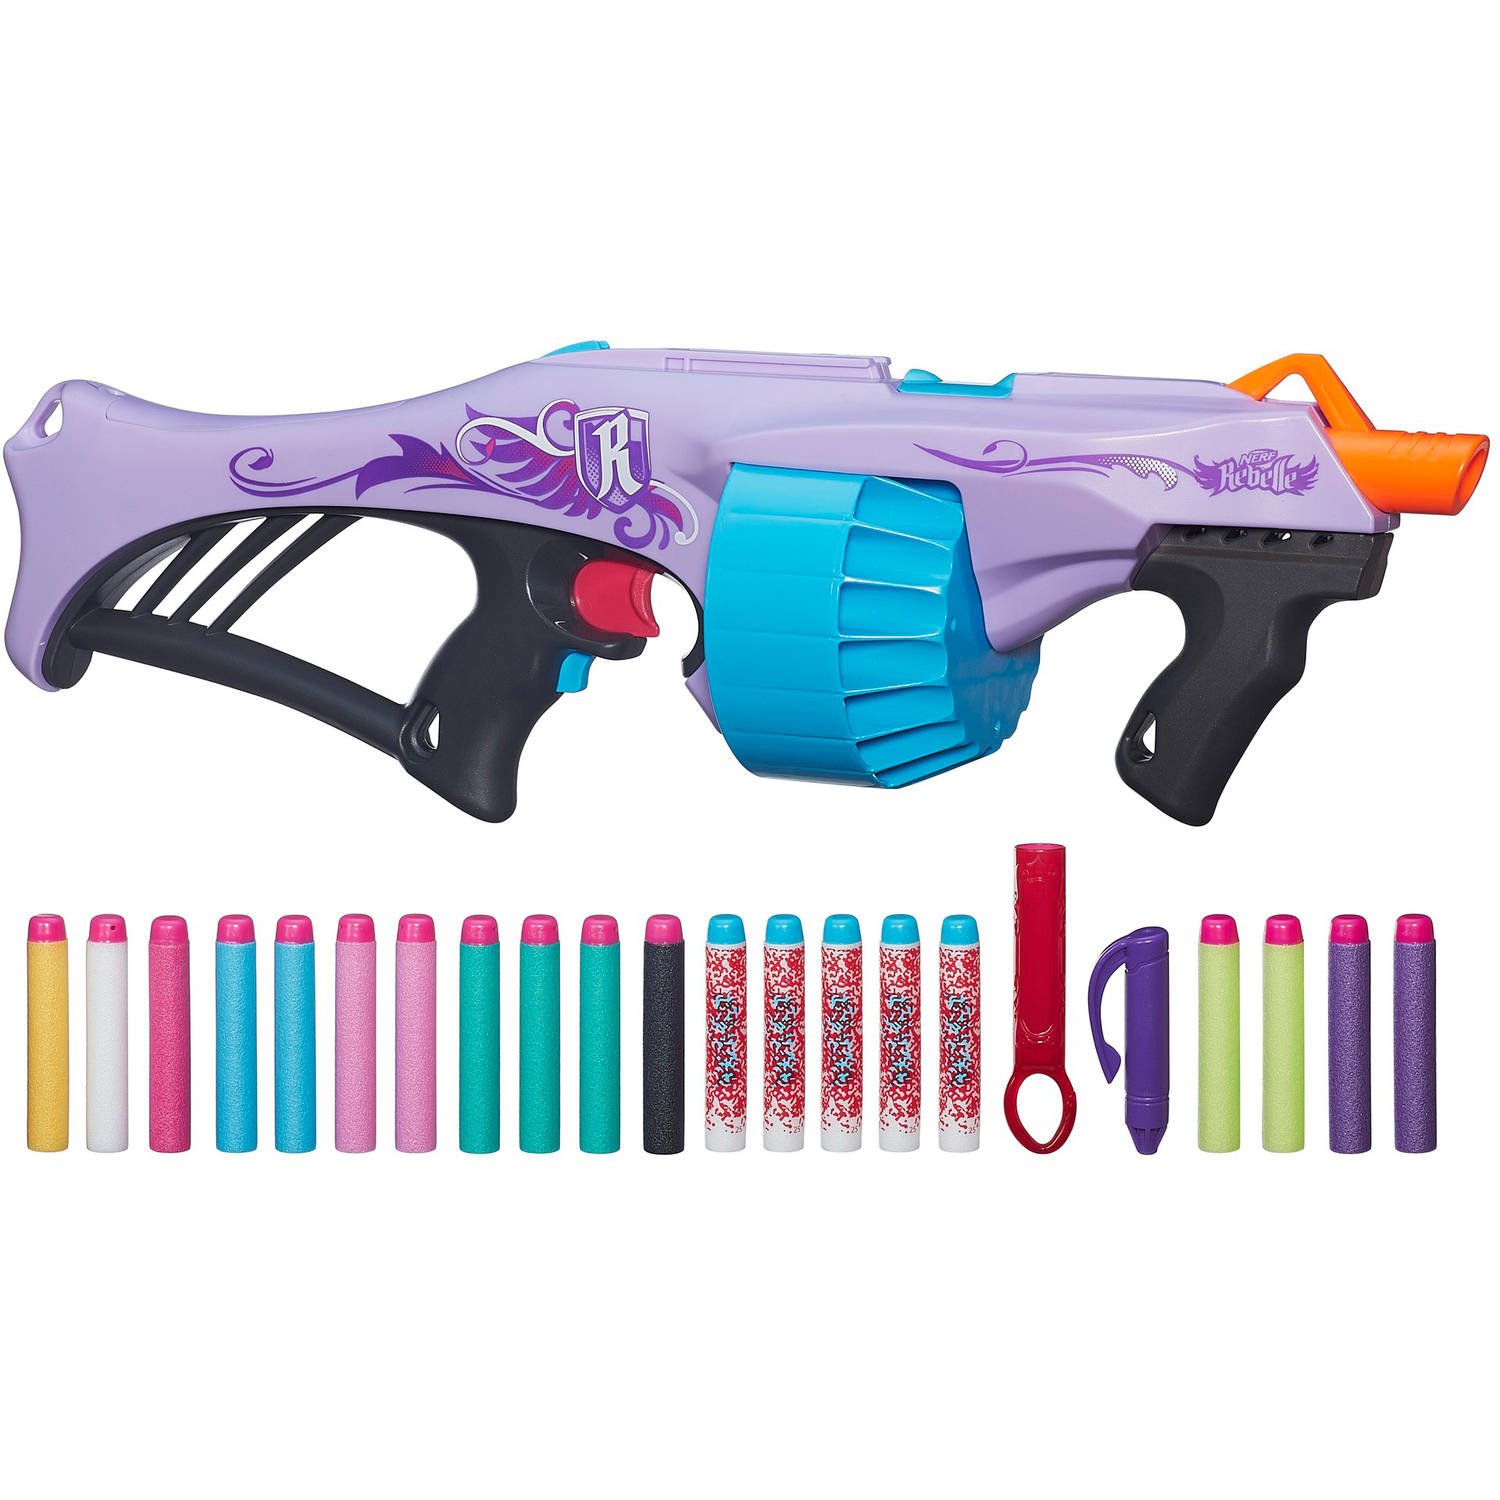 Nerf Rebelle Fearless Fire Blaster by Graco